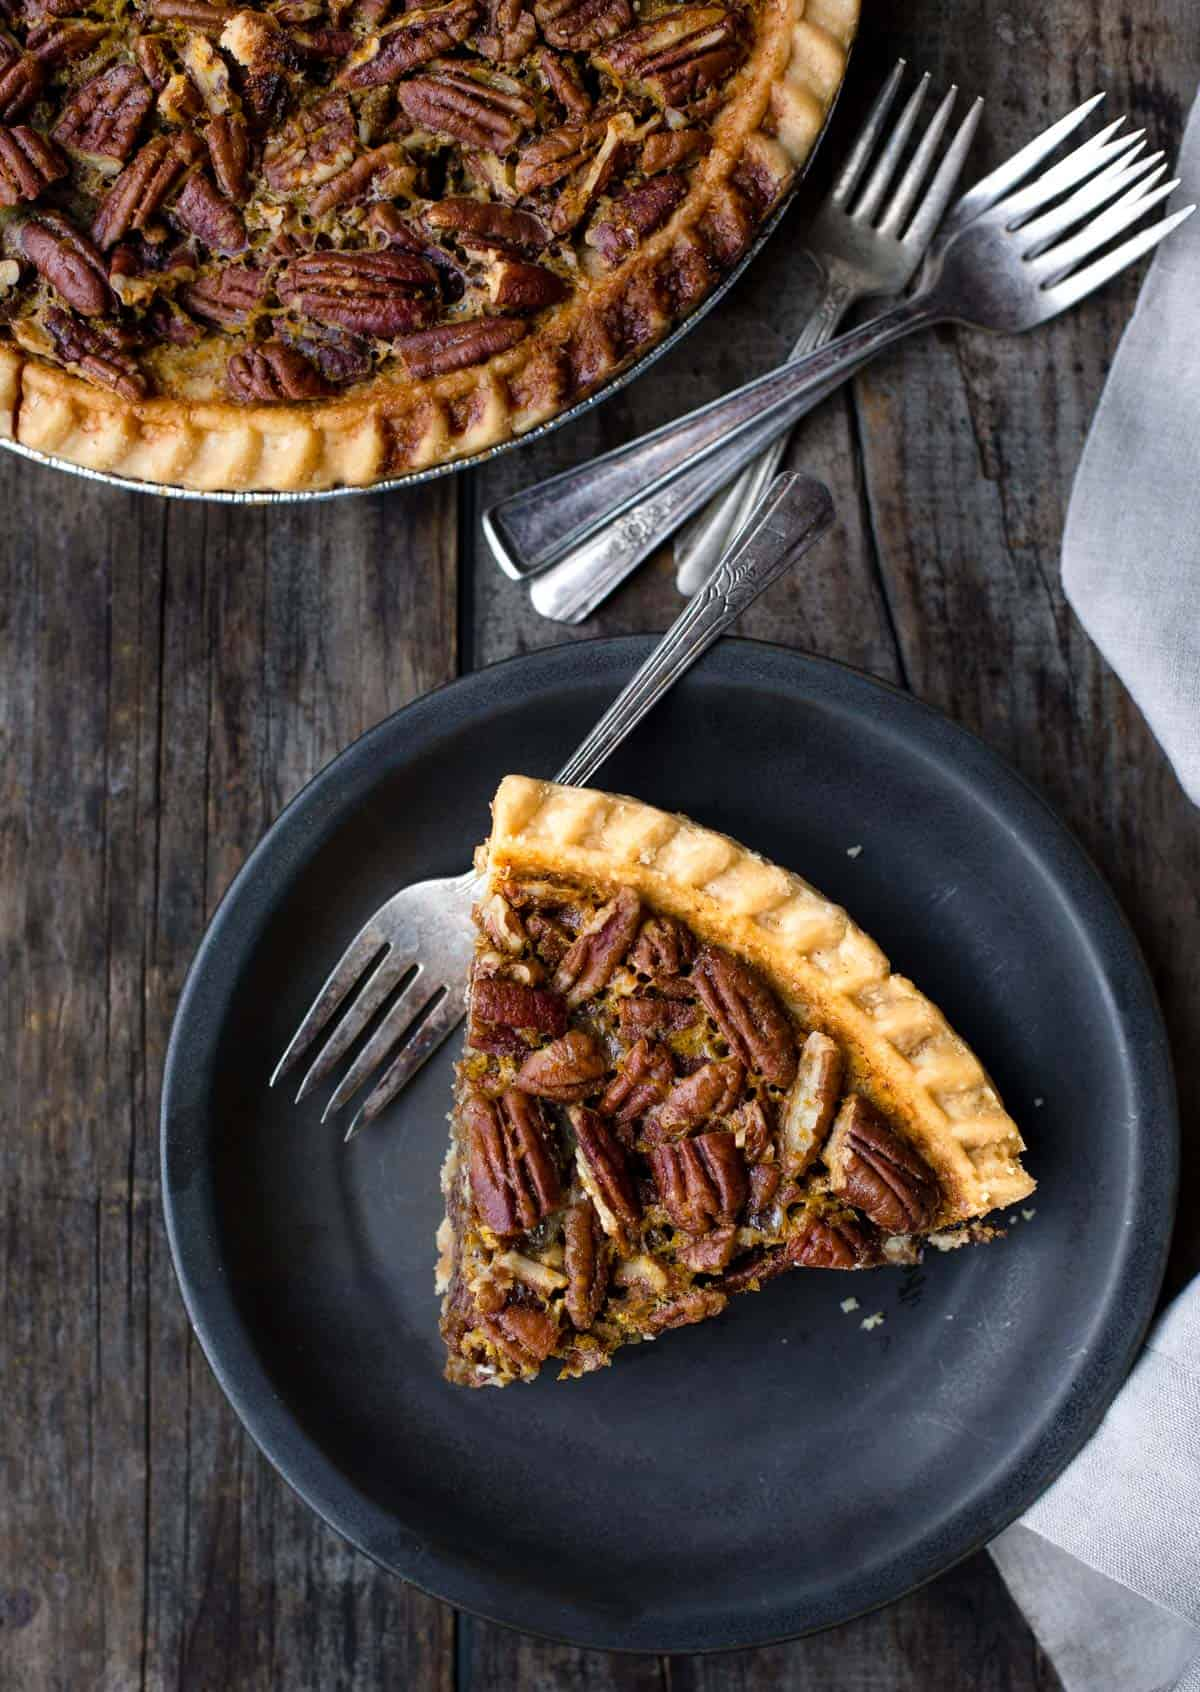 A slice of grilled pecan pie on a black plate